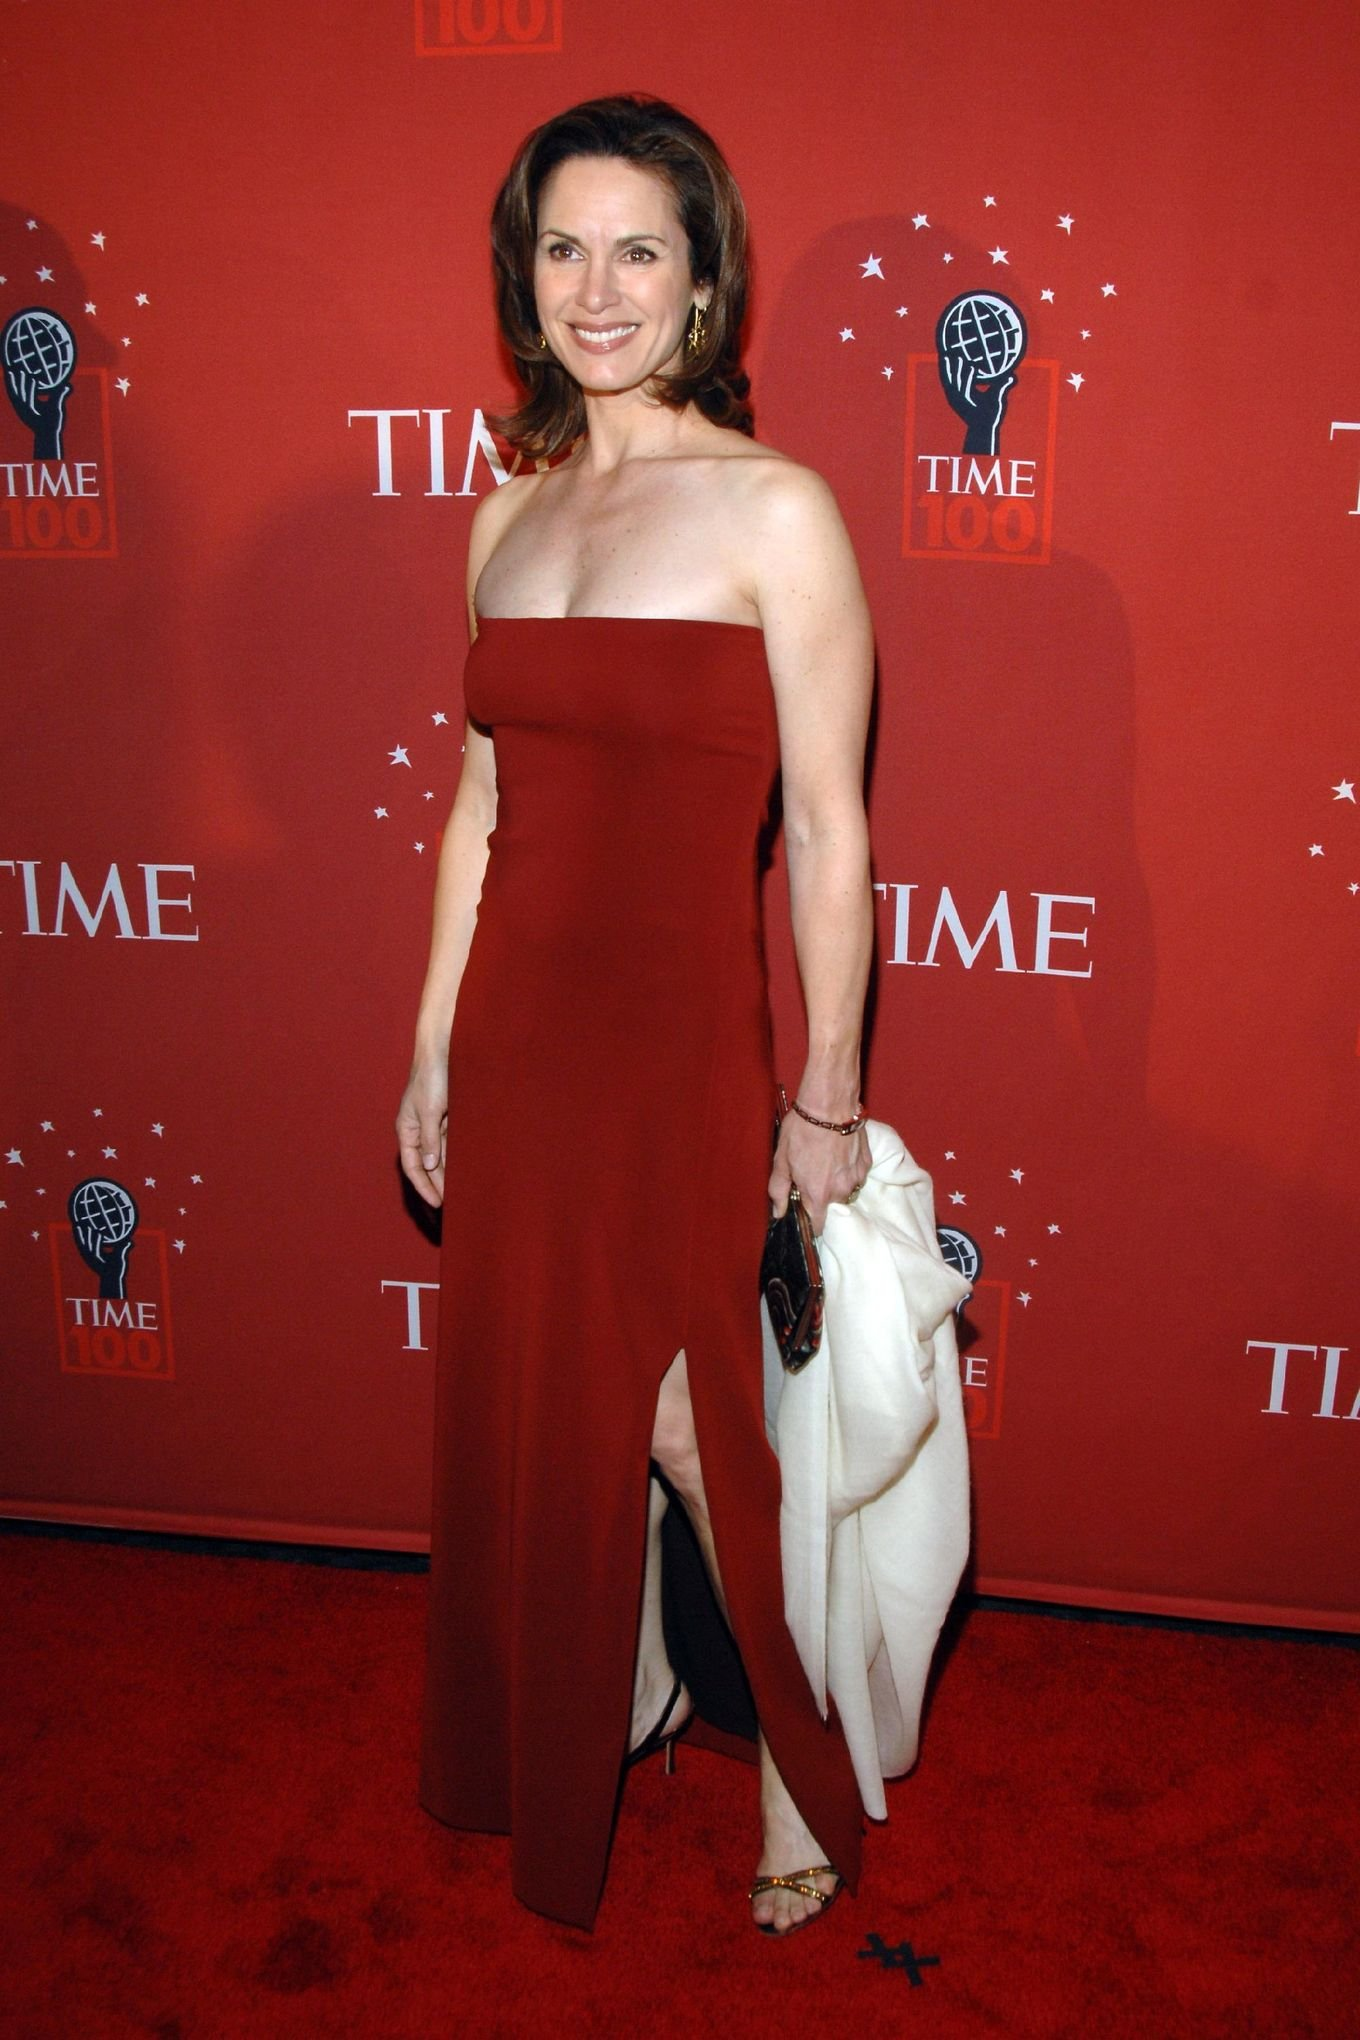 Hot Elizabeth Vargas in a strapless red dress smiling for the camera. She's holding a white piece of cloth in one hand.